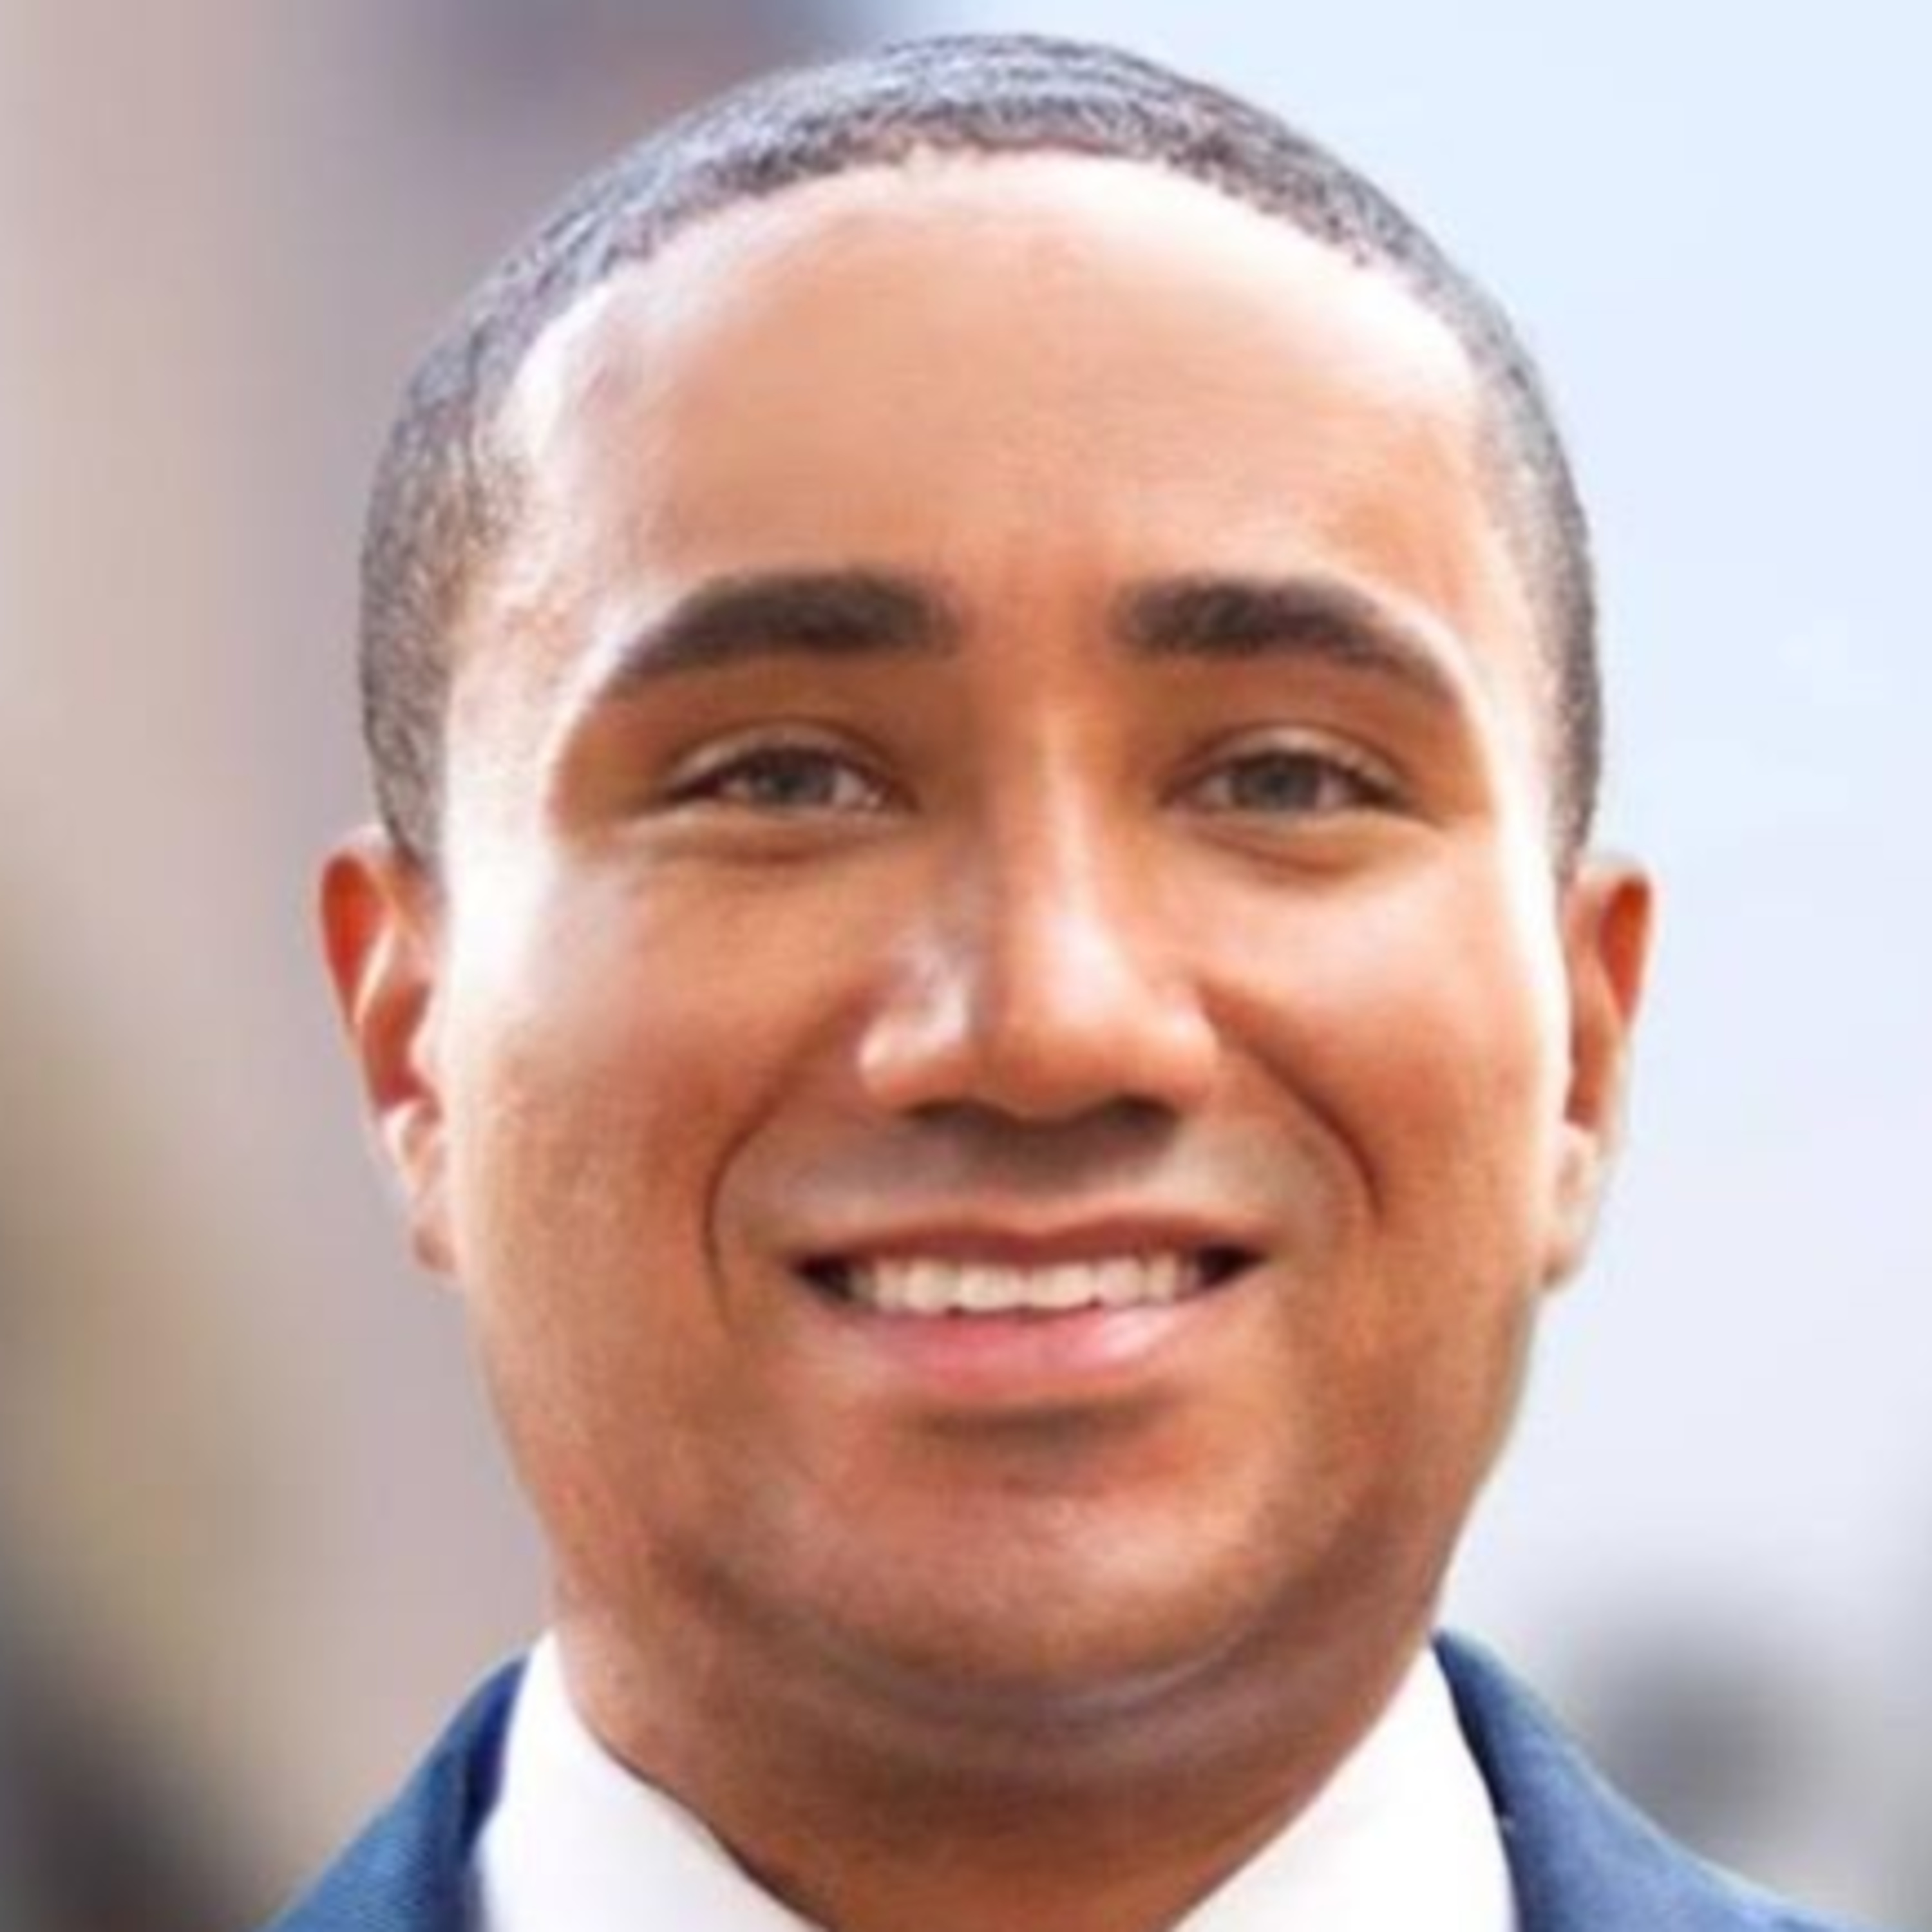 State Sen. Will Smith on the Upcoming General Assembly